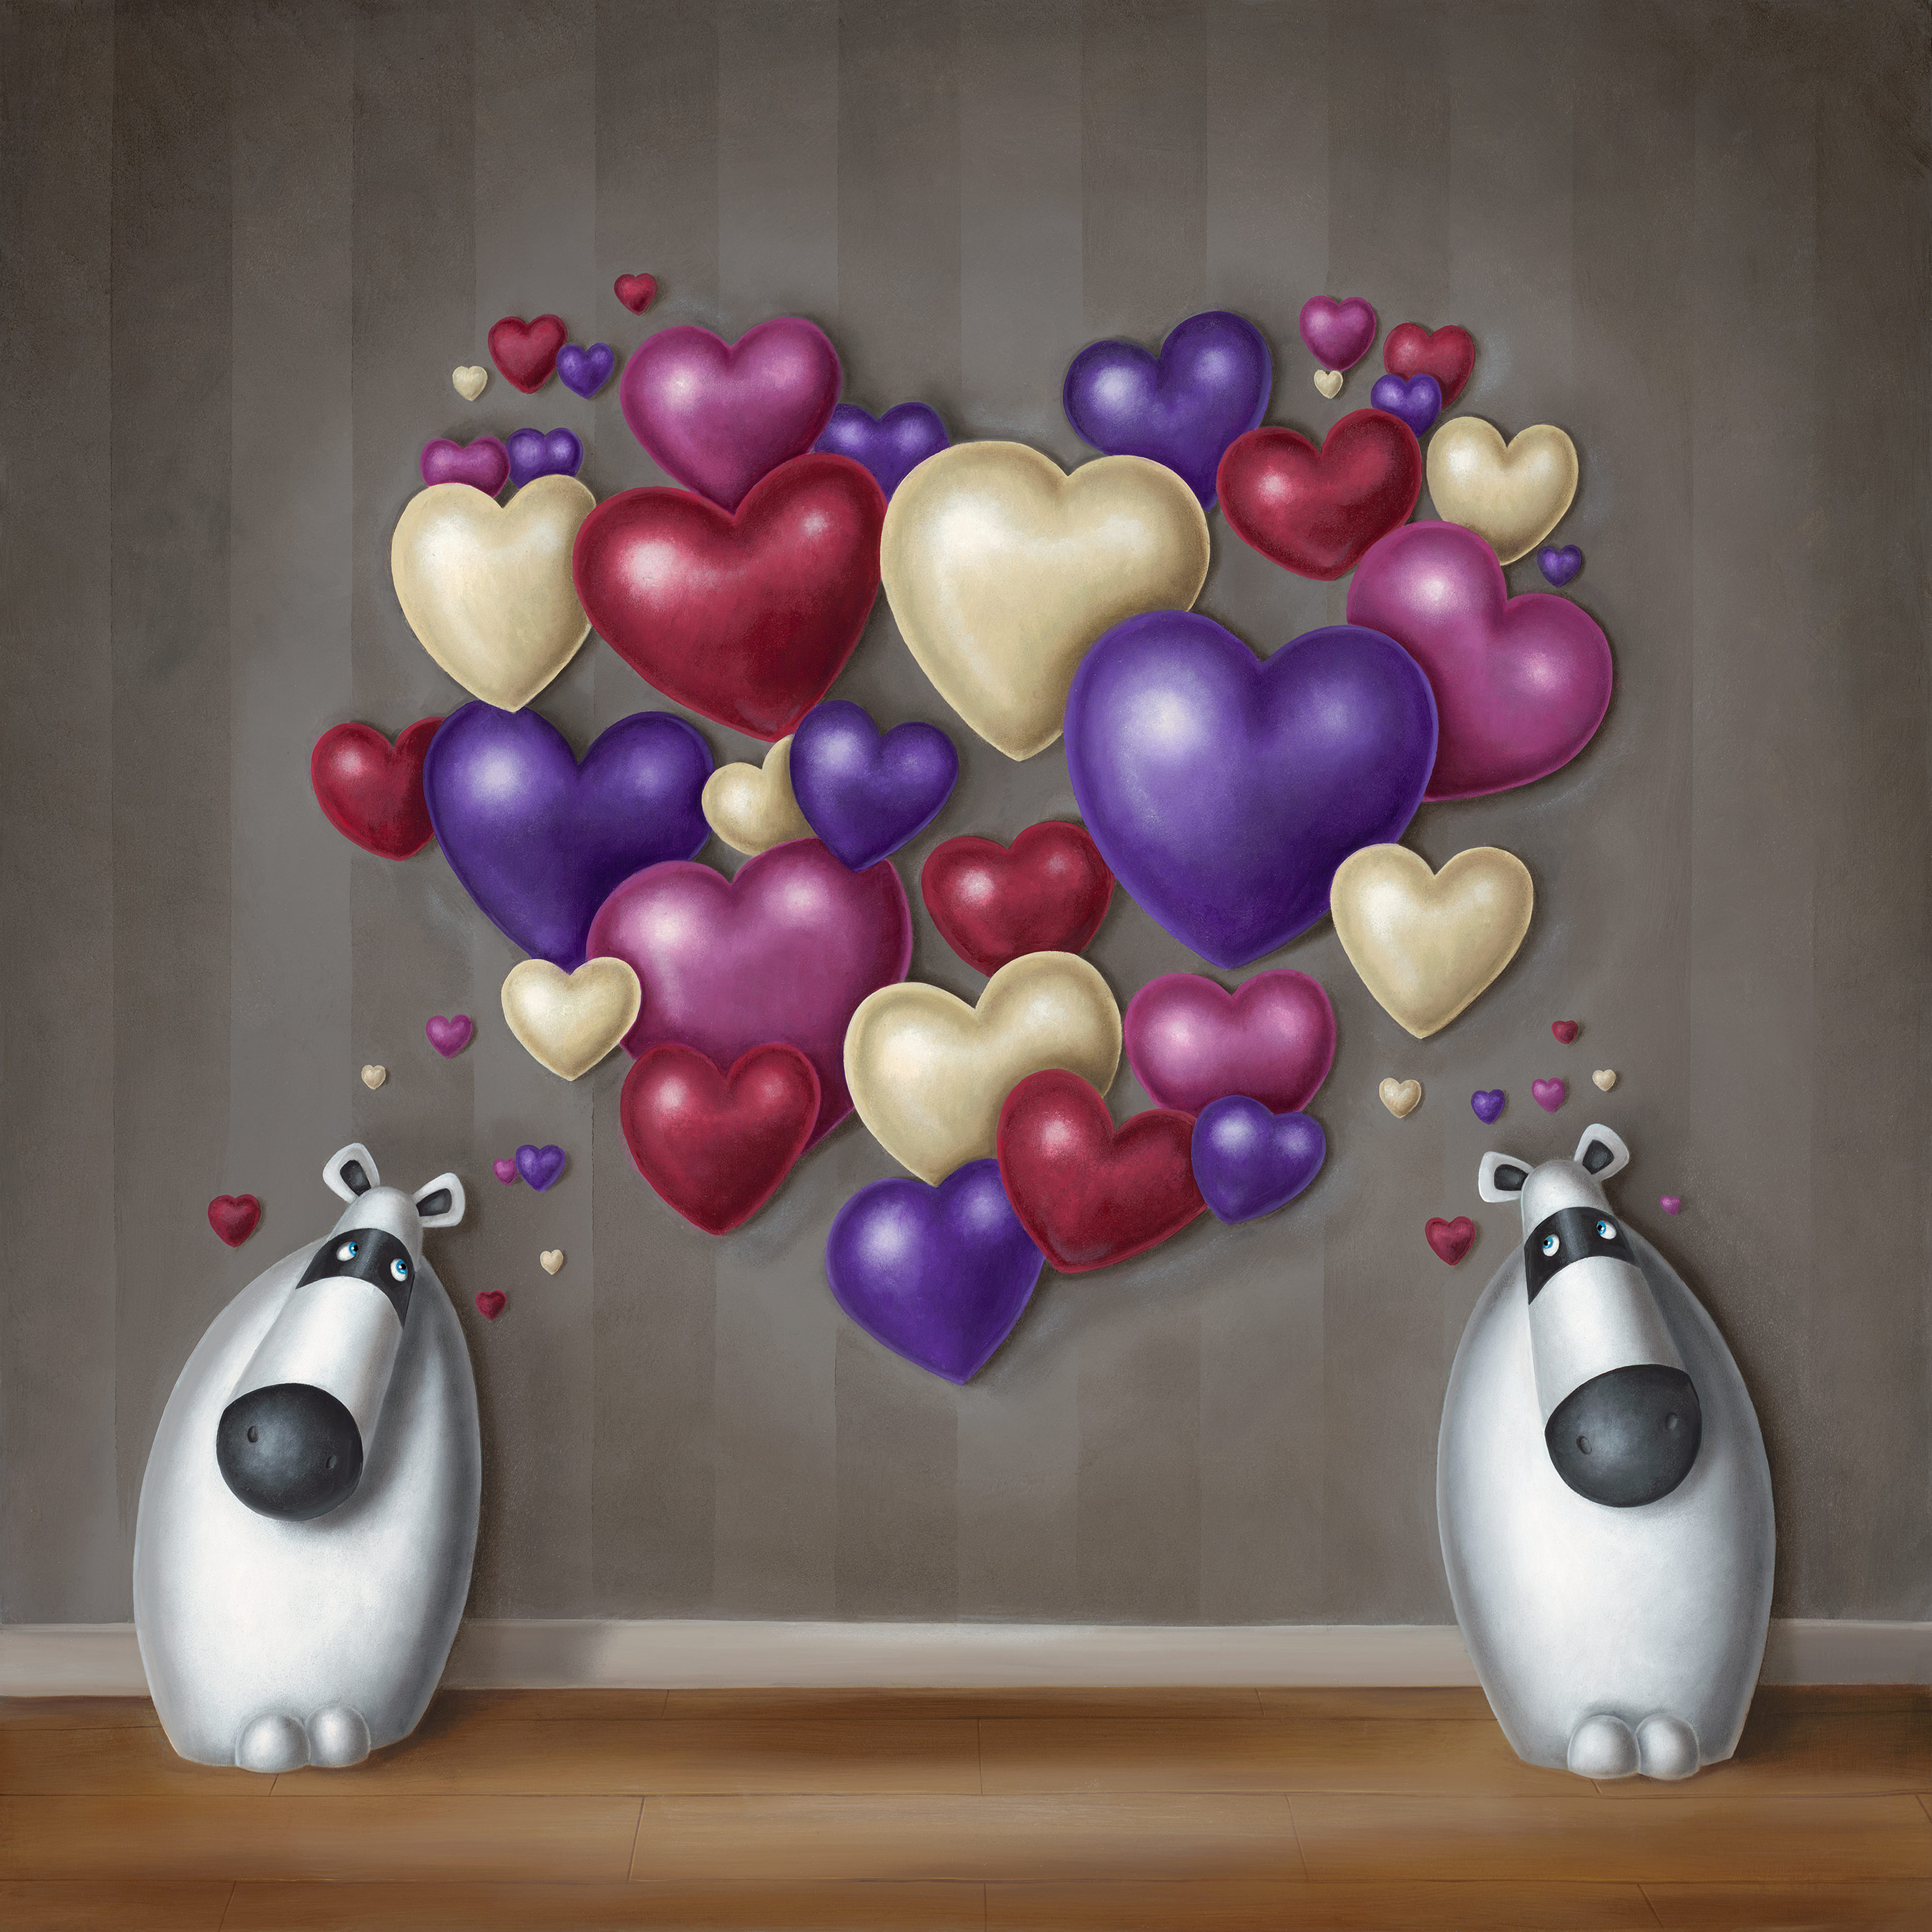 The Colour of Love by Peter Smith